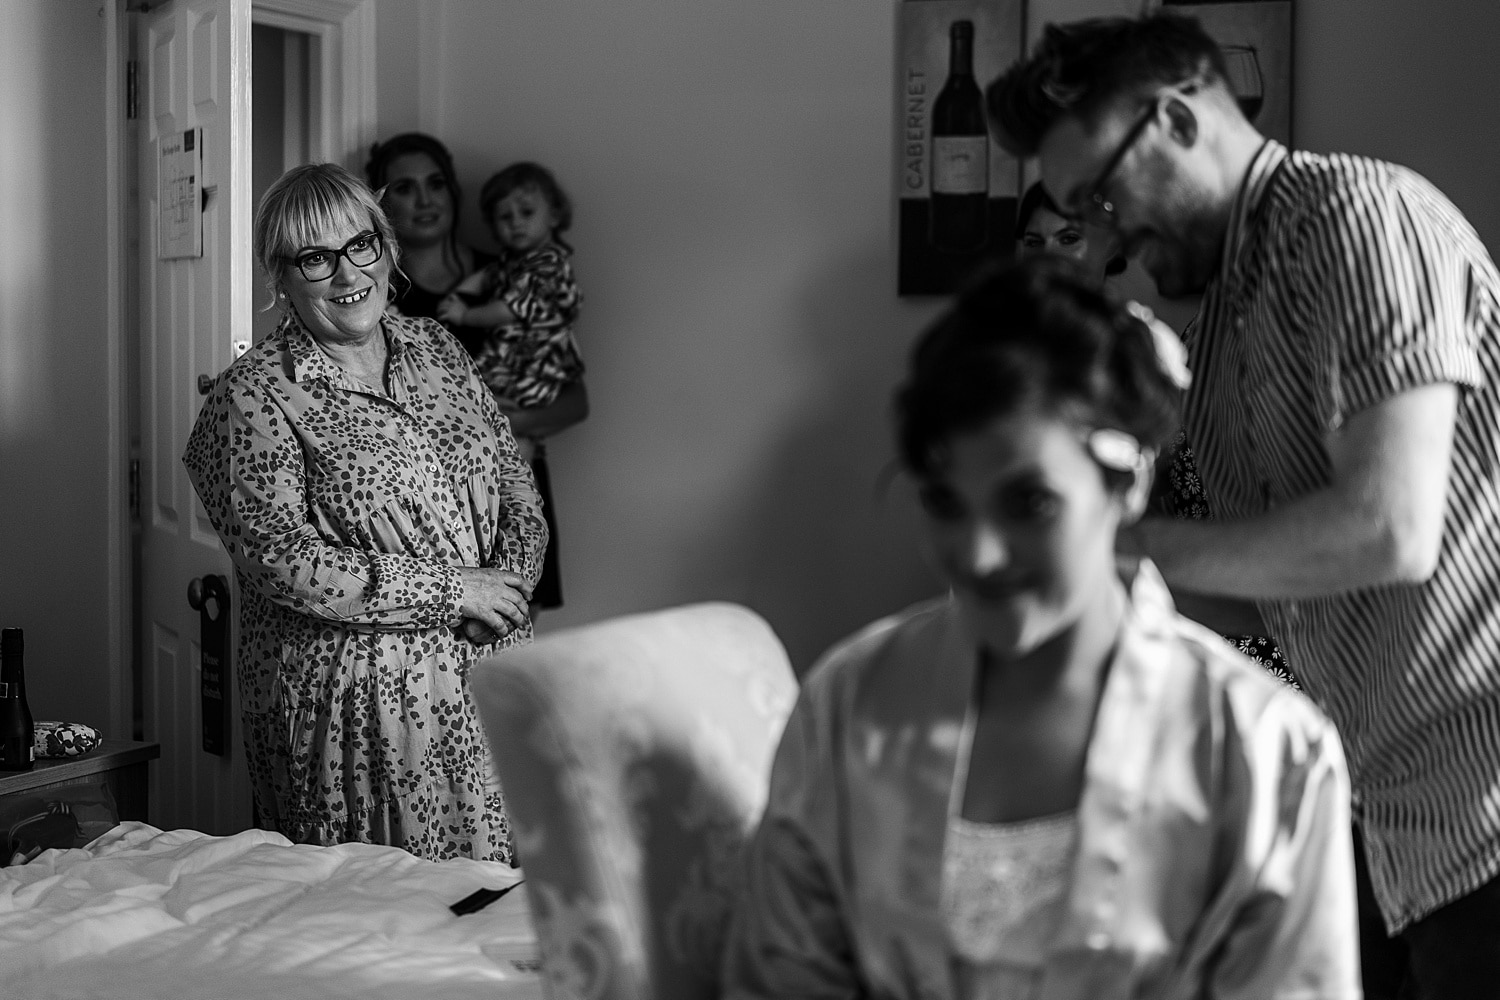 Mother looking onto bride as she gets ready for wedding